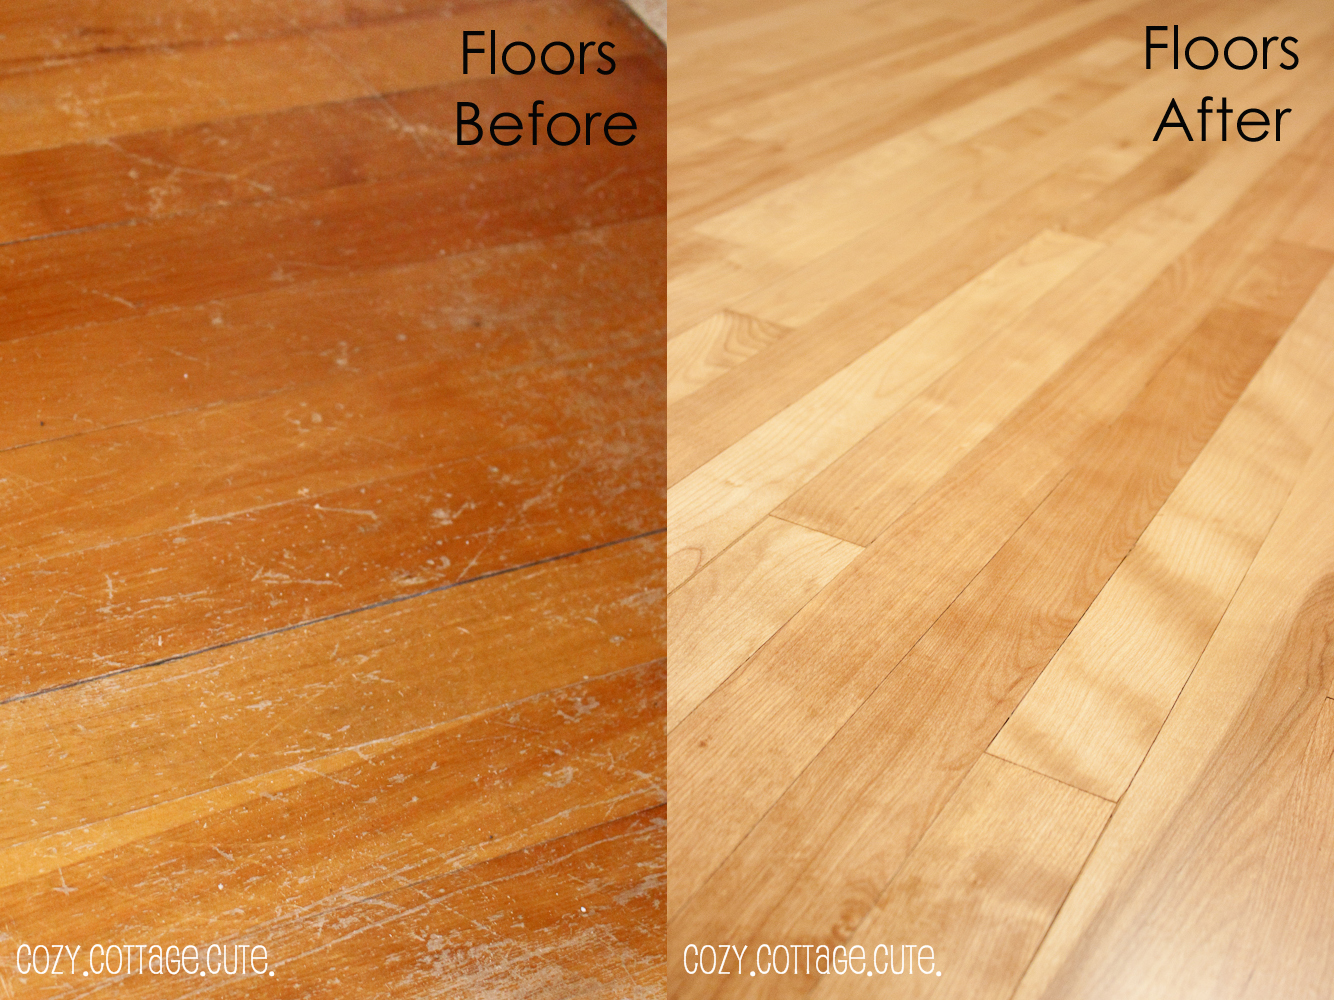 Refinish hardwood floors march 2013 for Hardwood floor refinishing